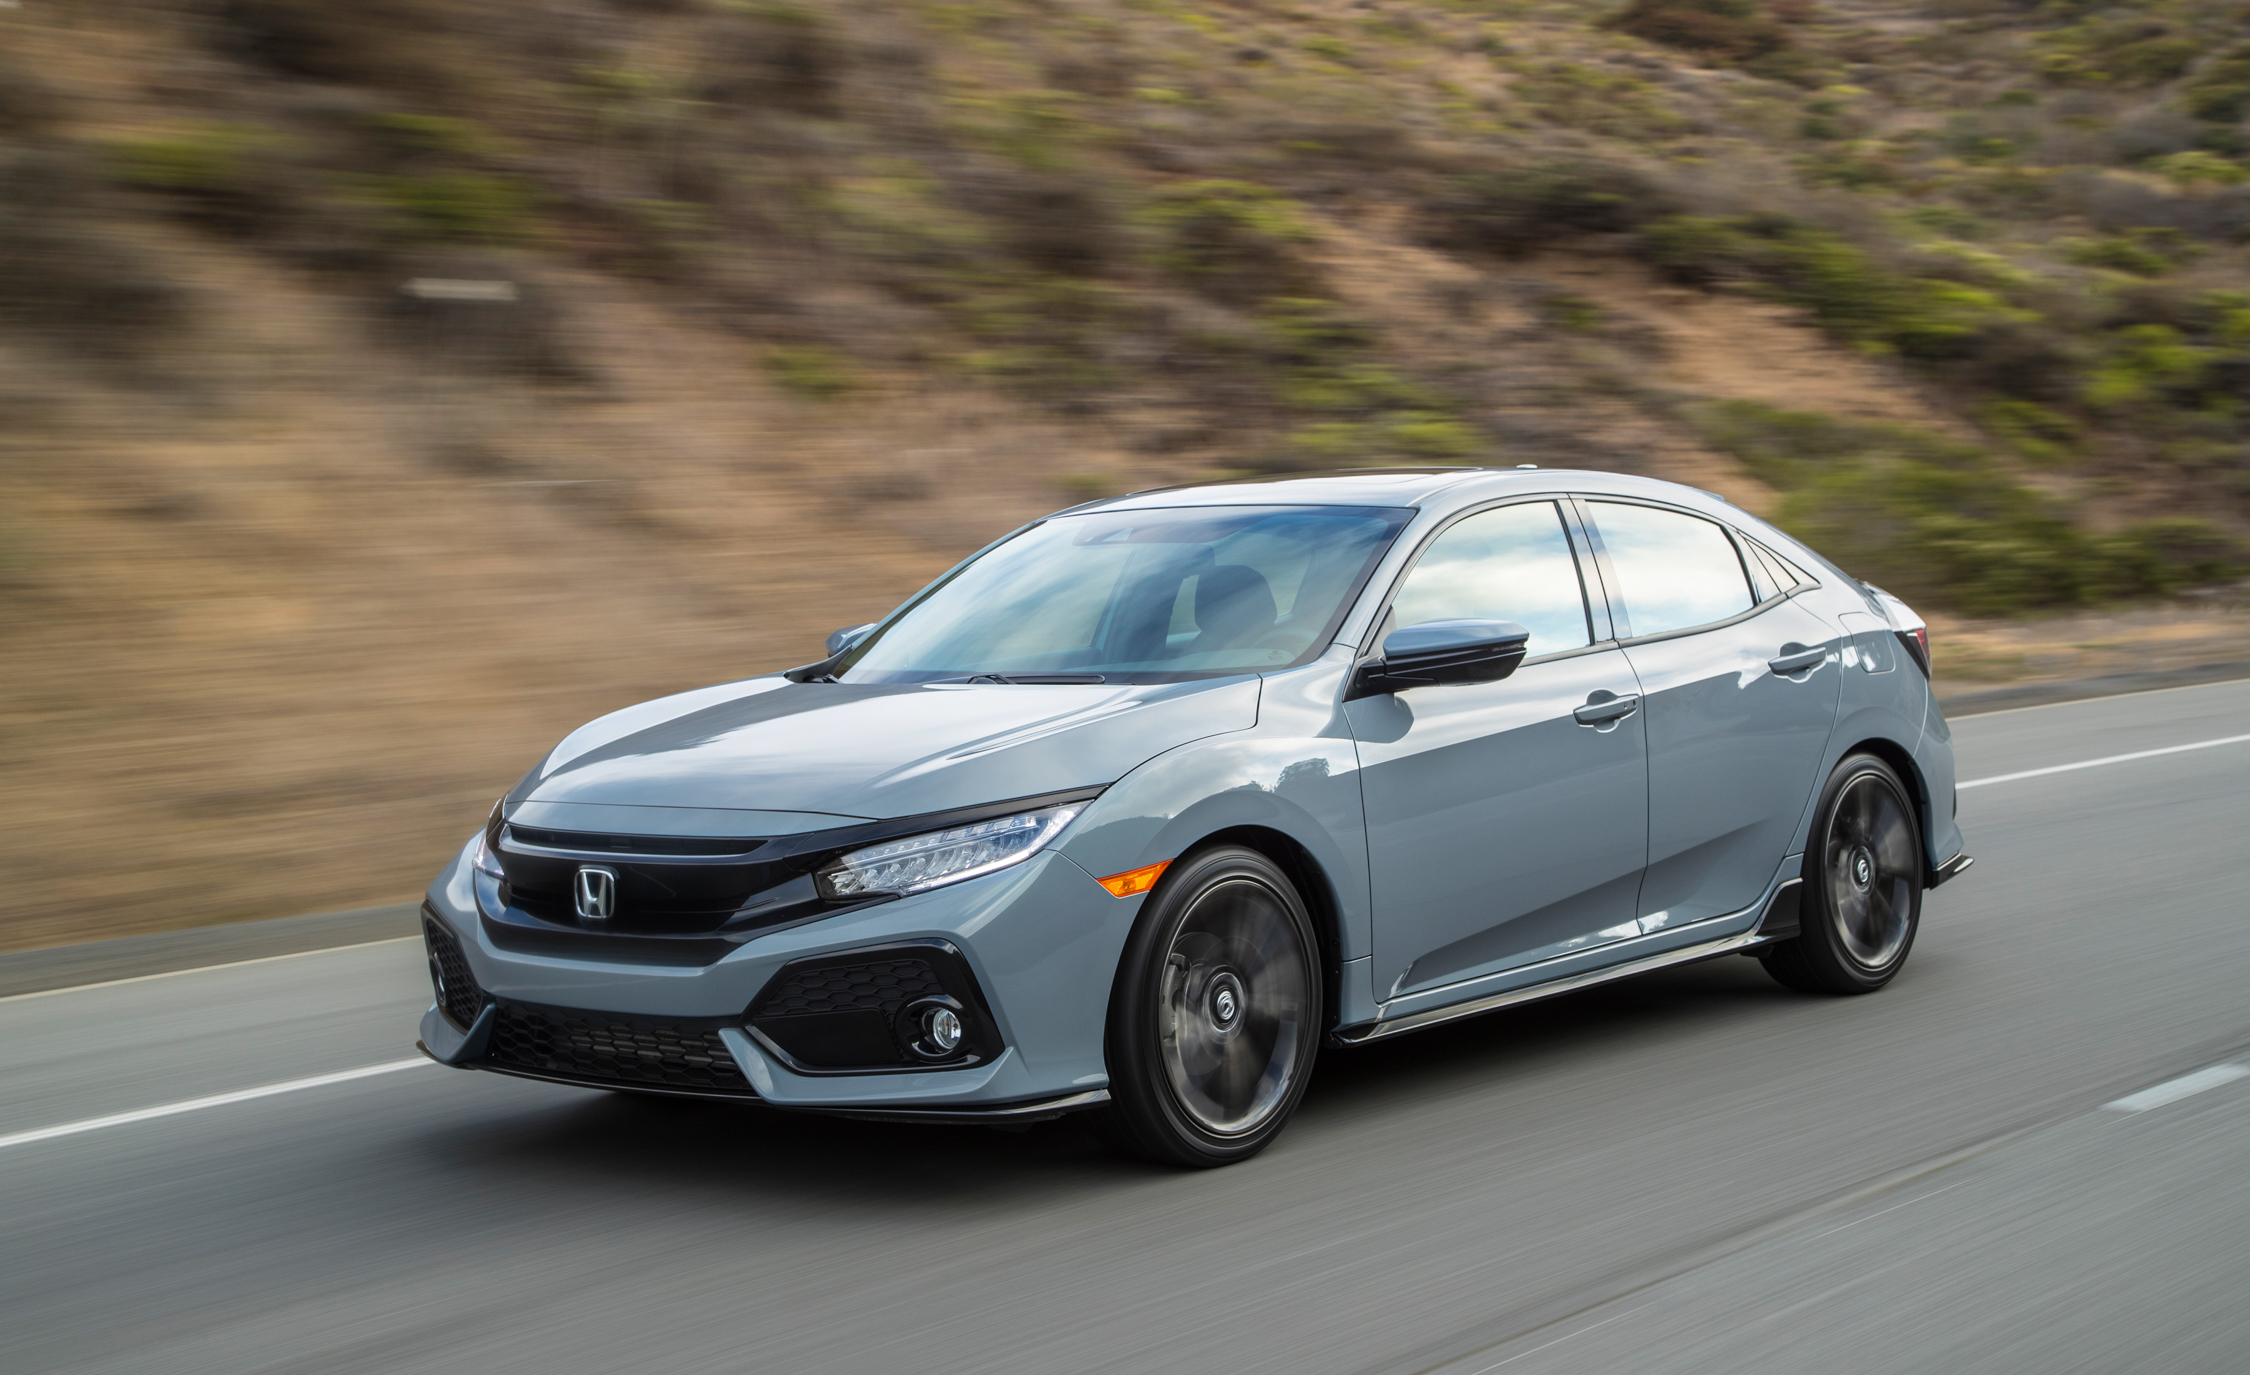 2017 Honda Civic Hatchback (View 5 of 34)